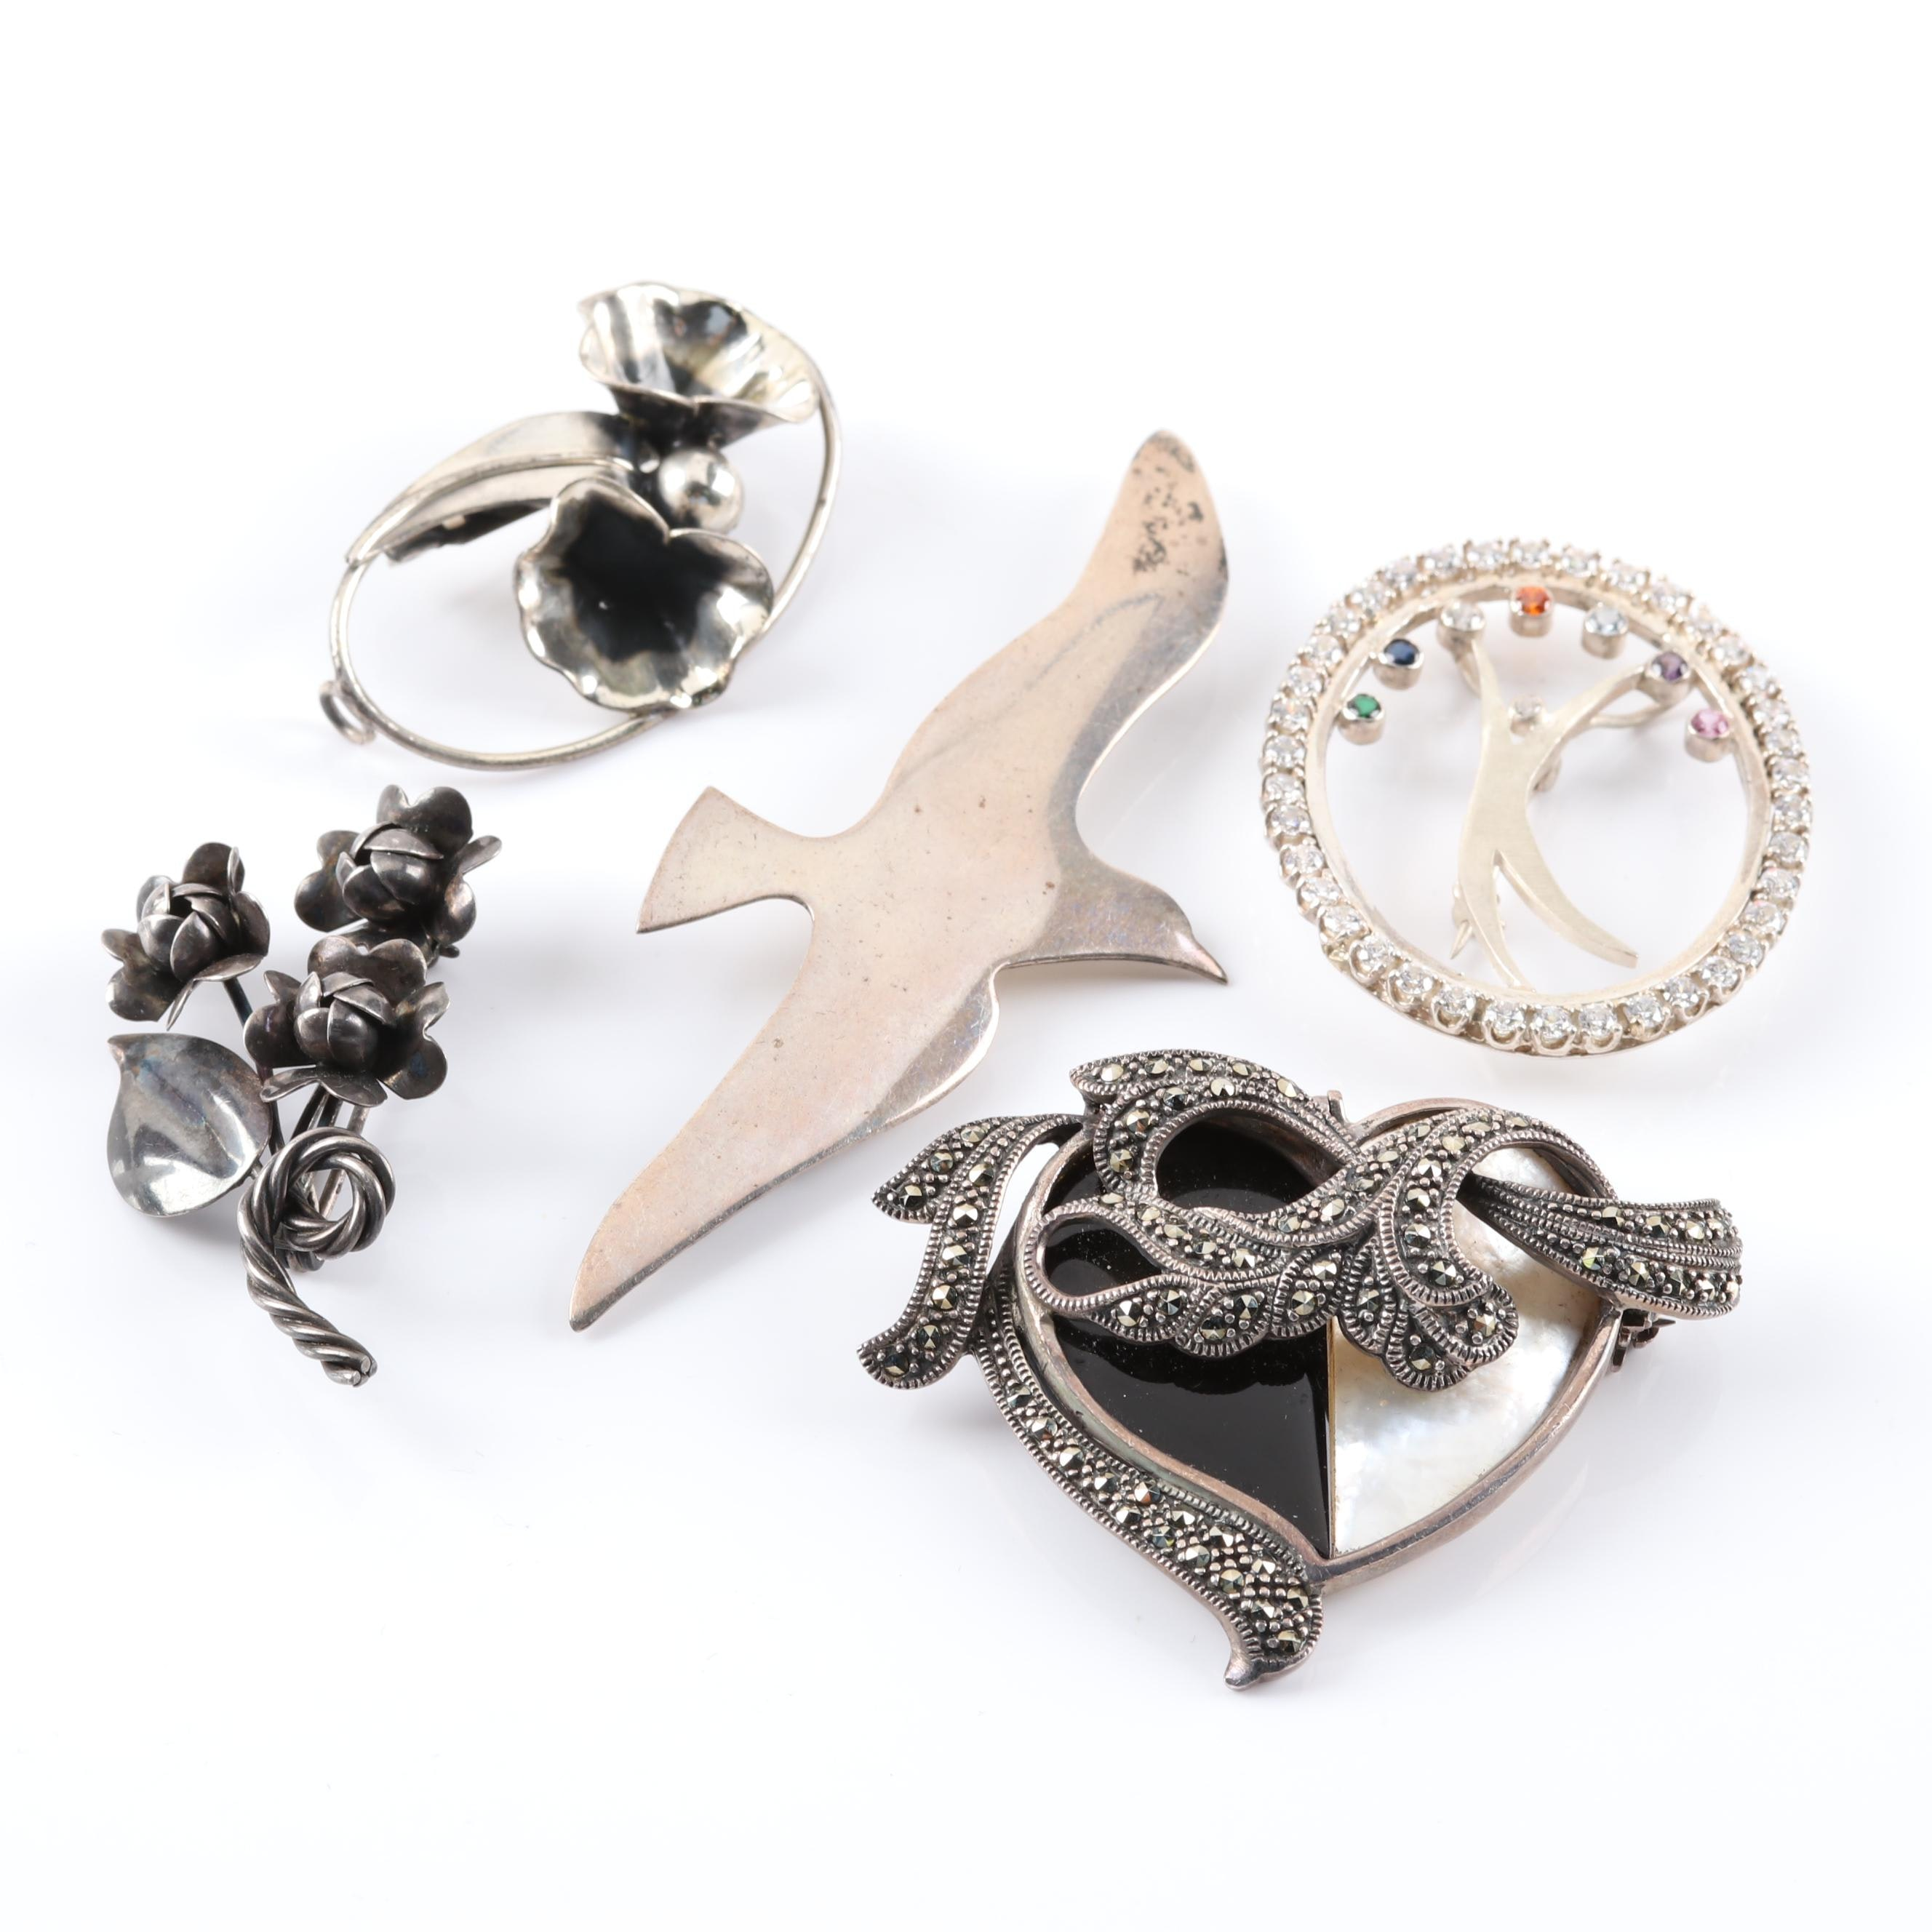 Handmade Sterling Silver Brooches featuring Mother of Pearl and Black Onyx